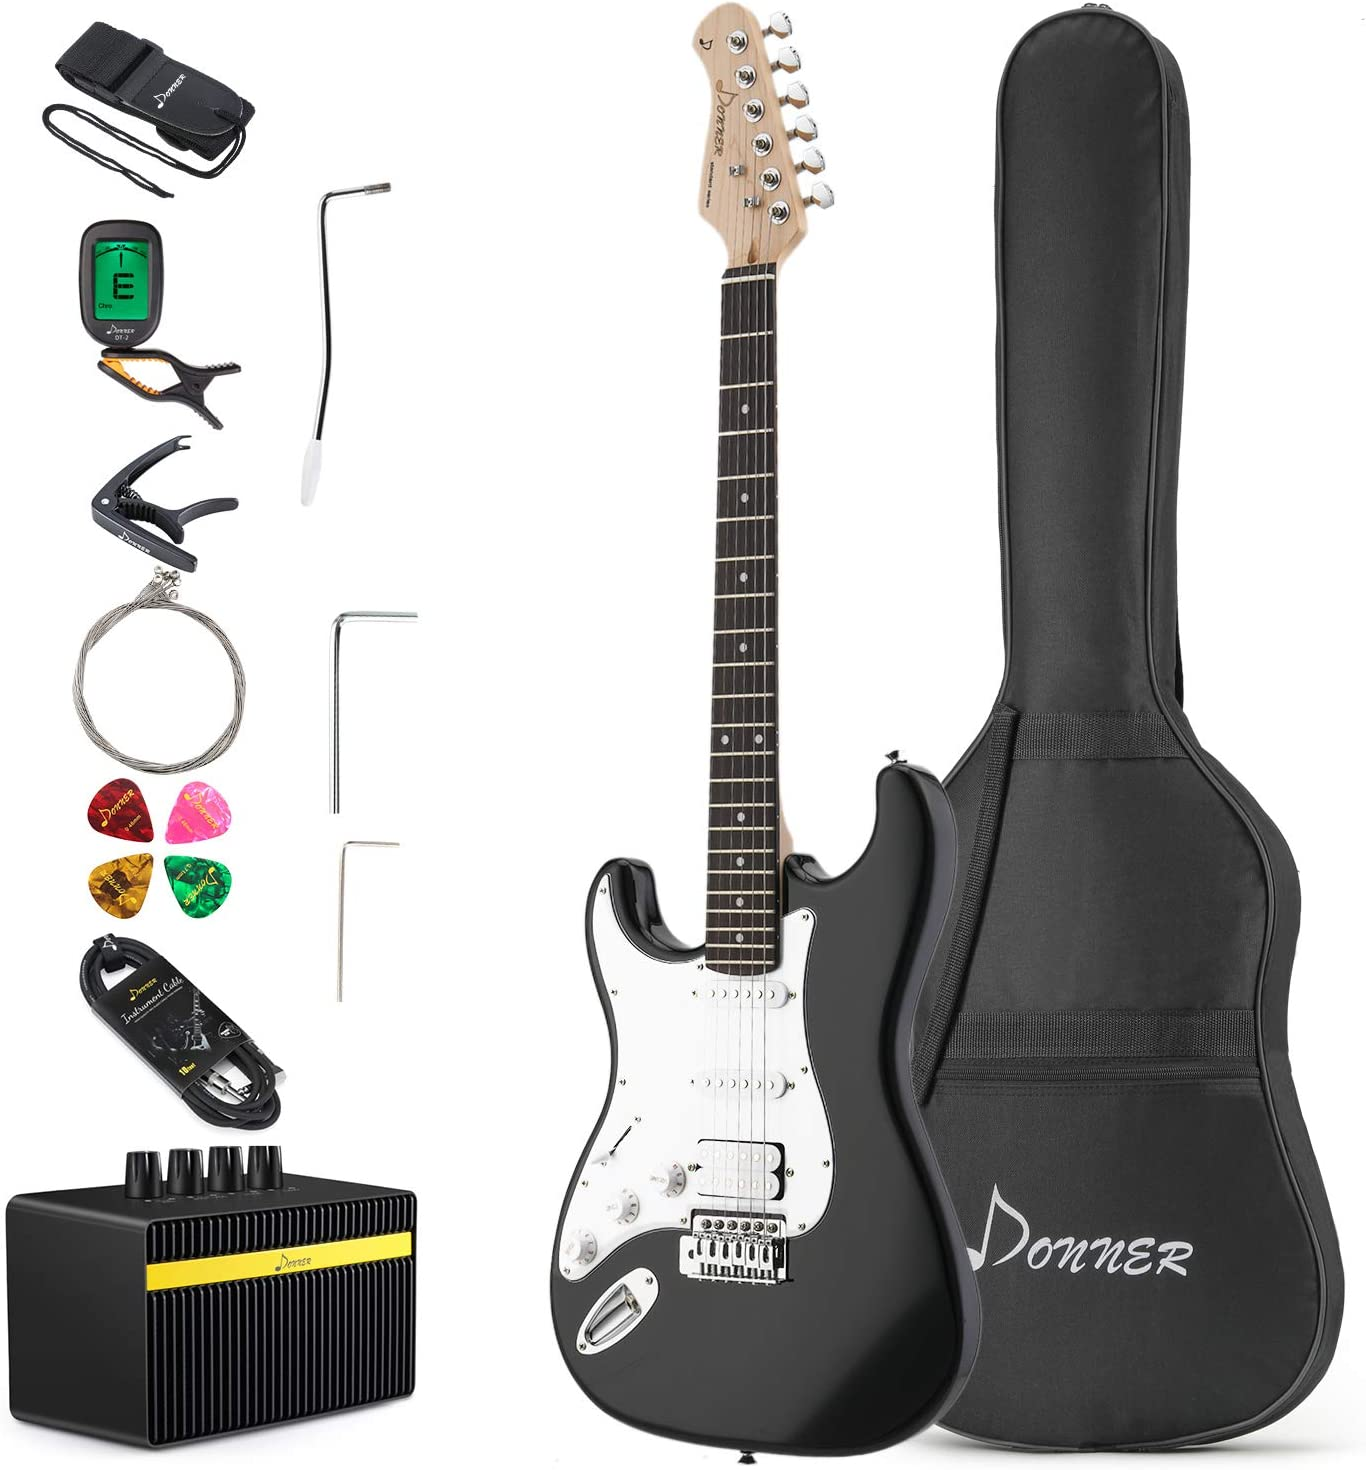 Donner DST-1BL Solid Body 39 Inch Full-Size Left Handed Electric Guitar Kit Beginner Black, Starter, with Amplifier, Bag, Capo, Strap, String, Tuner, Cable, Picks